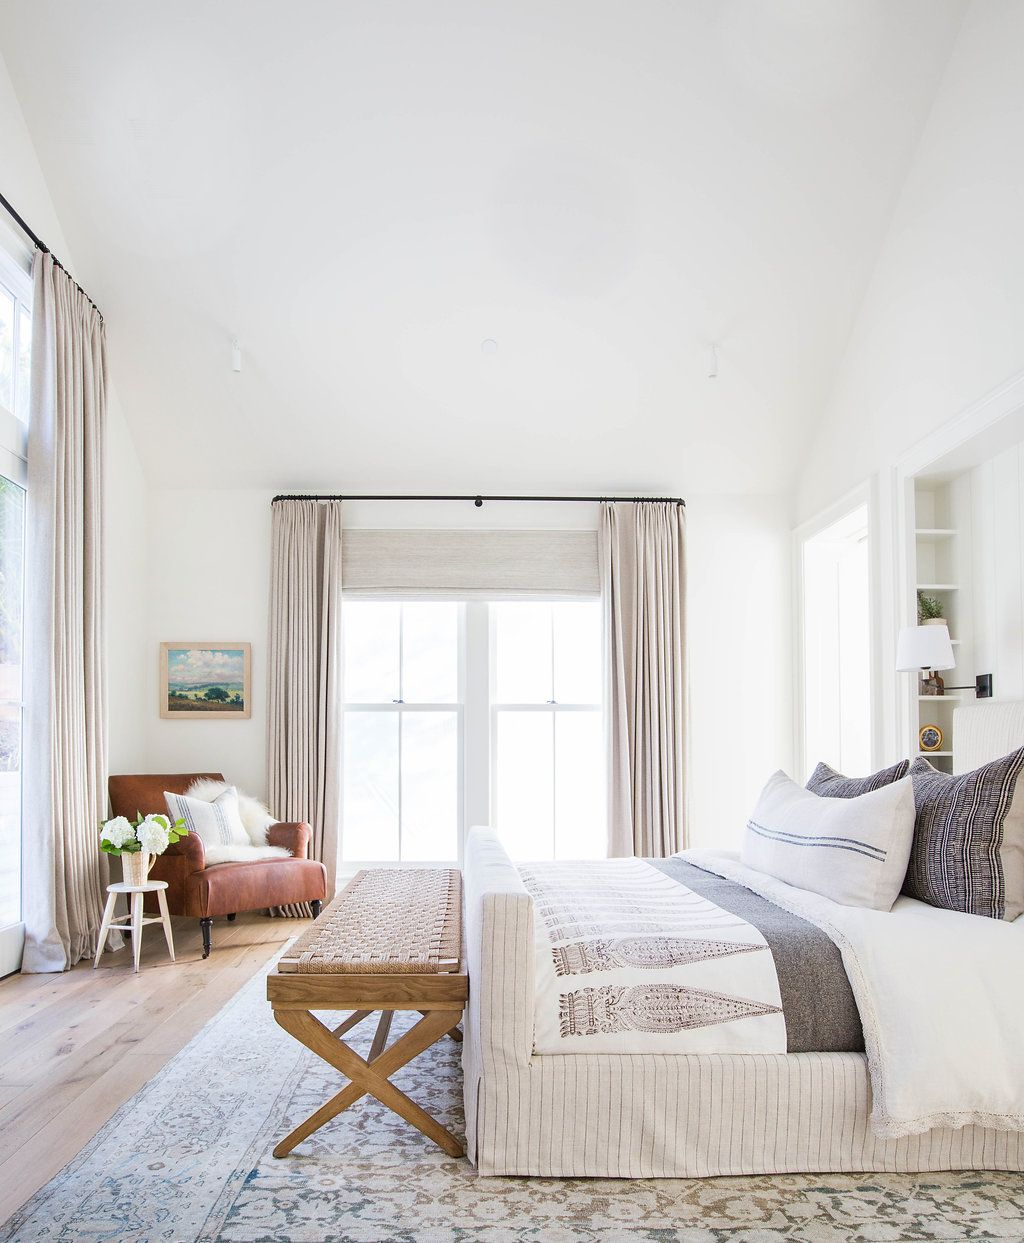 Amber Interiors :: Client For Realz the Nicest People on the ...